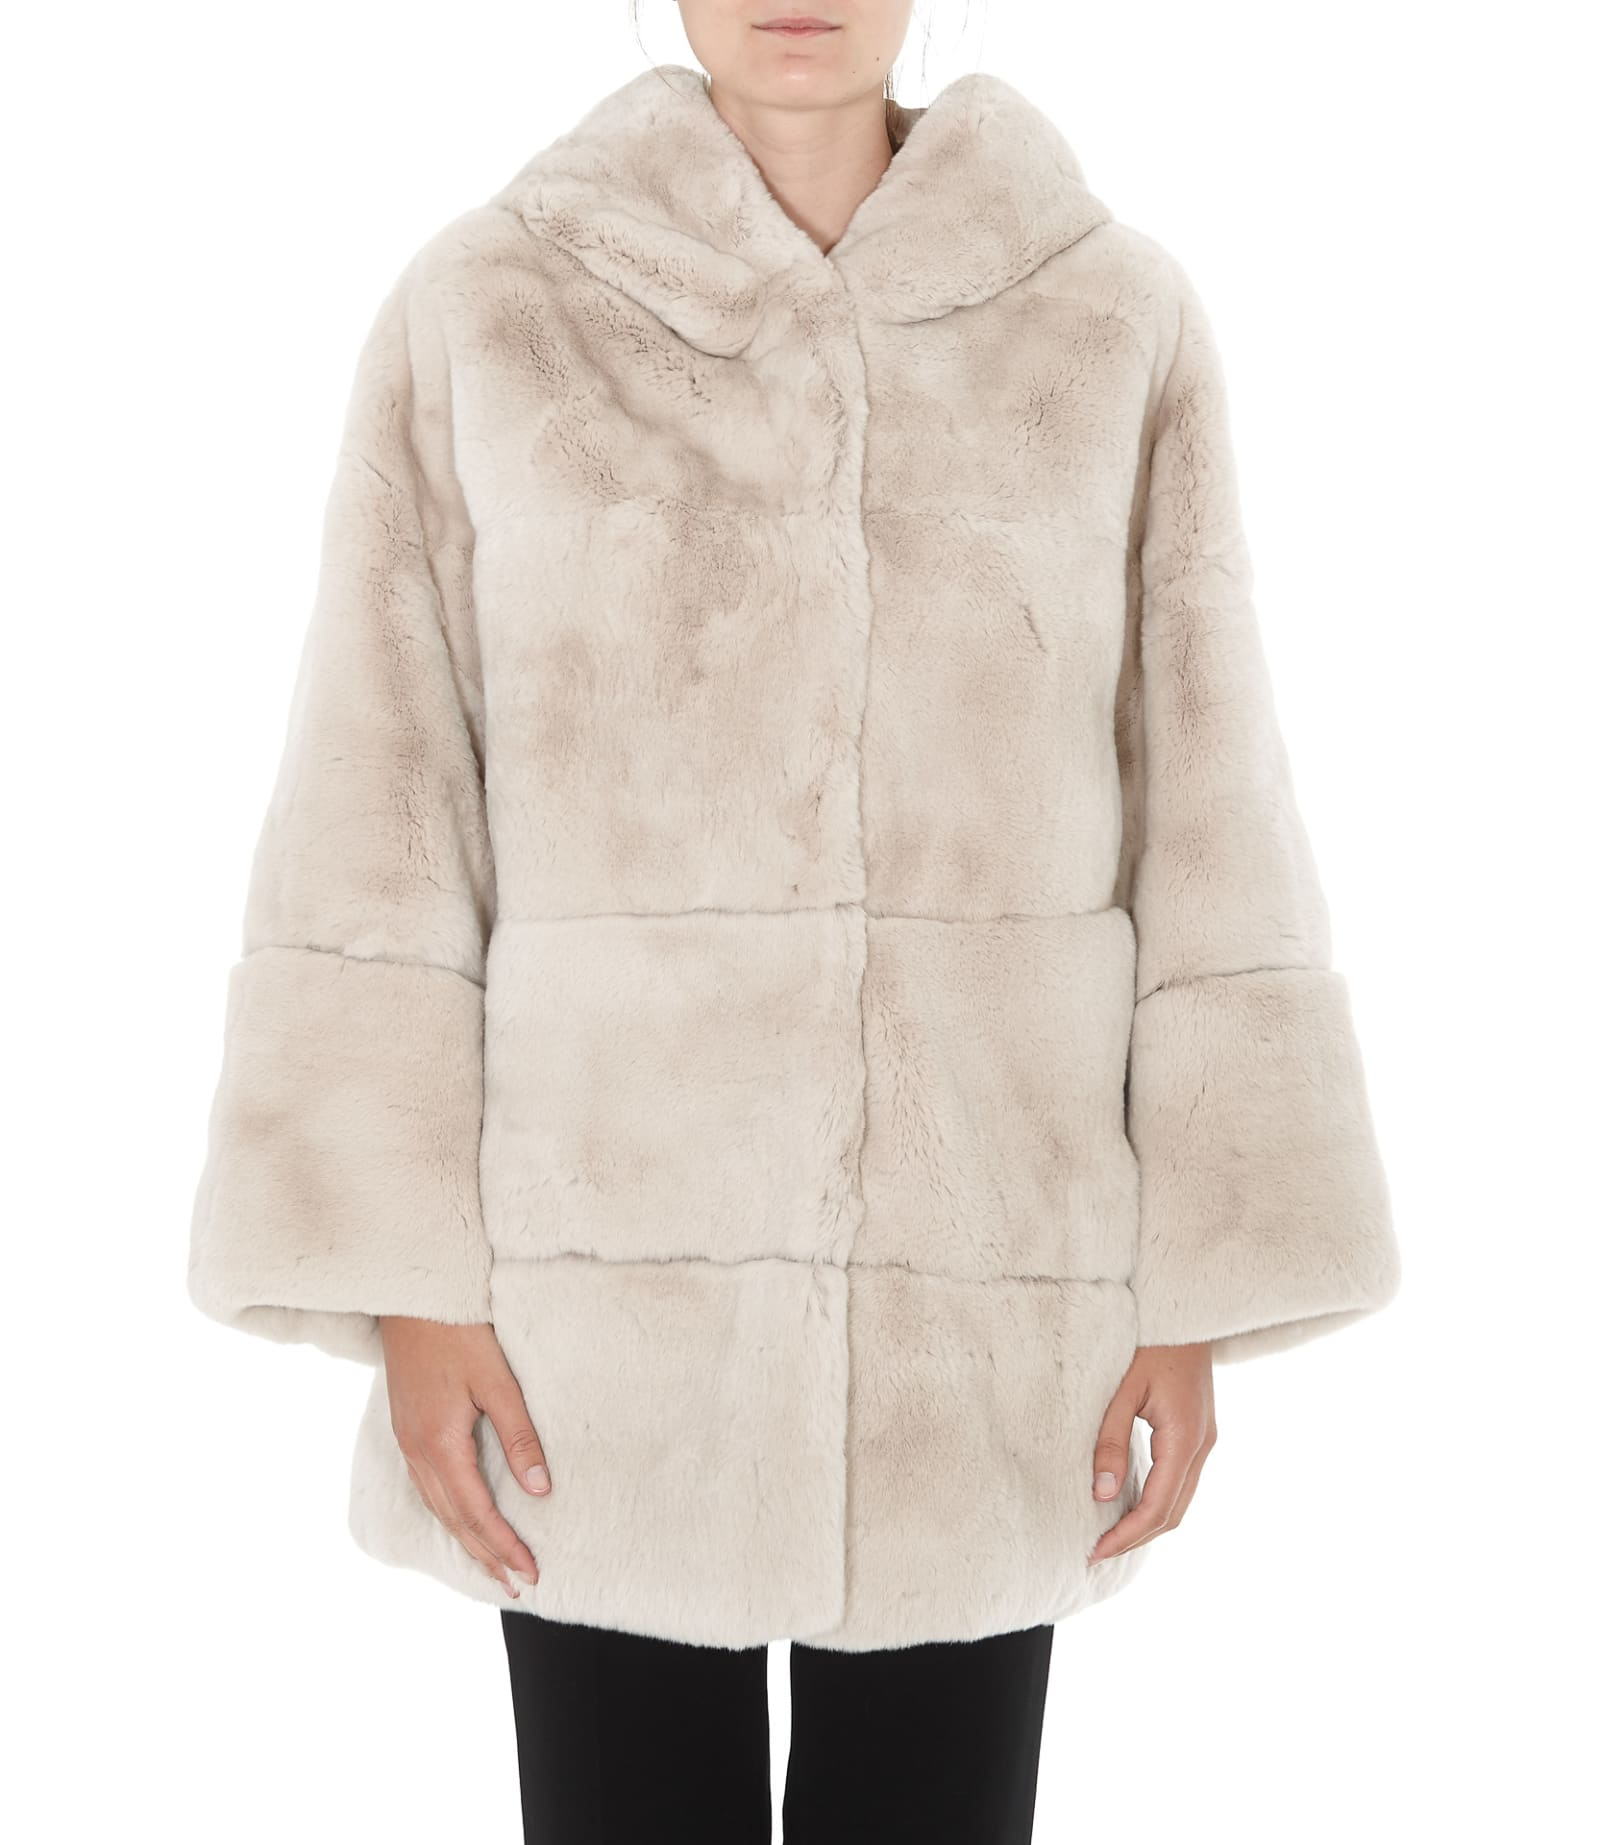 S.w.o.r.d 6.6.44 Eco Fur Coat